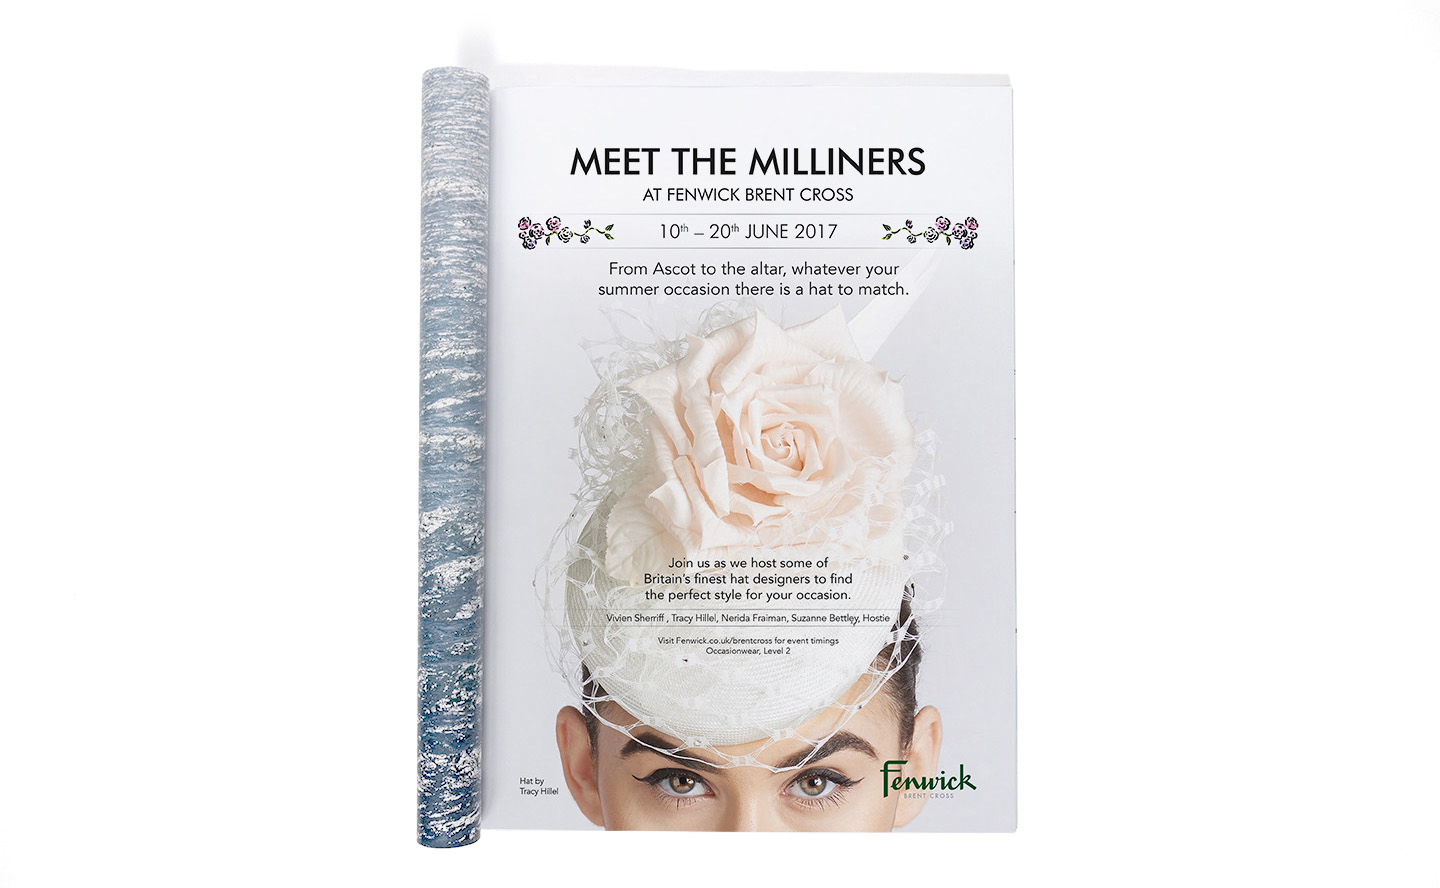 http://rusyndesign.co.uk/wp-content/uploads/2021/02/Fenwick-Milliners-Press-Ad-1.jpg